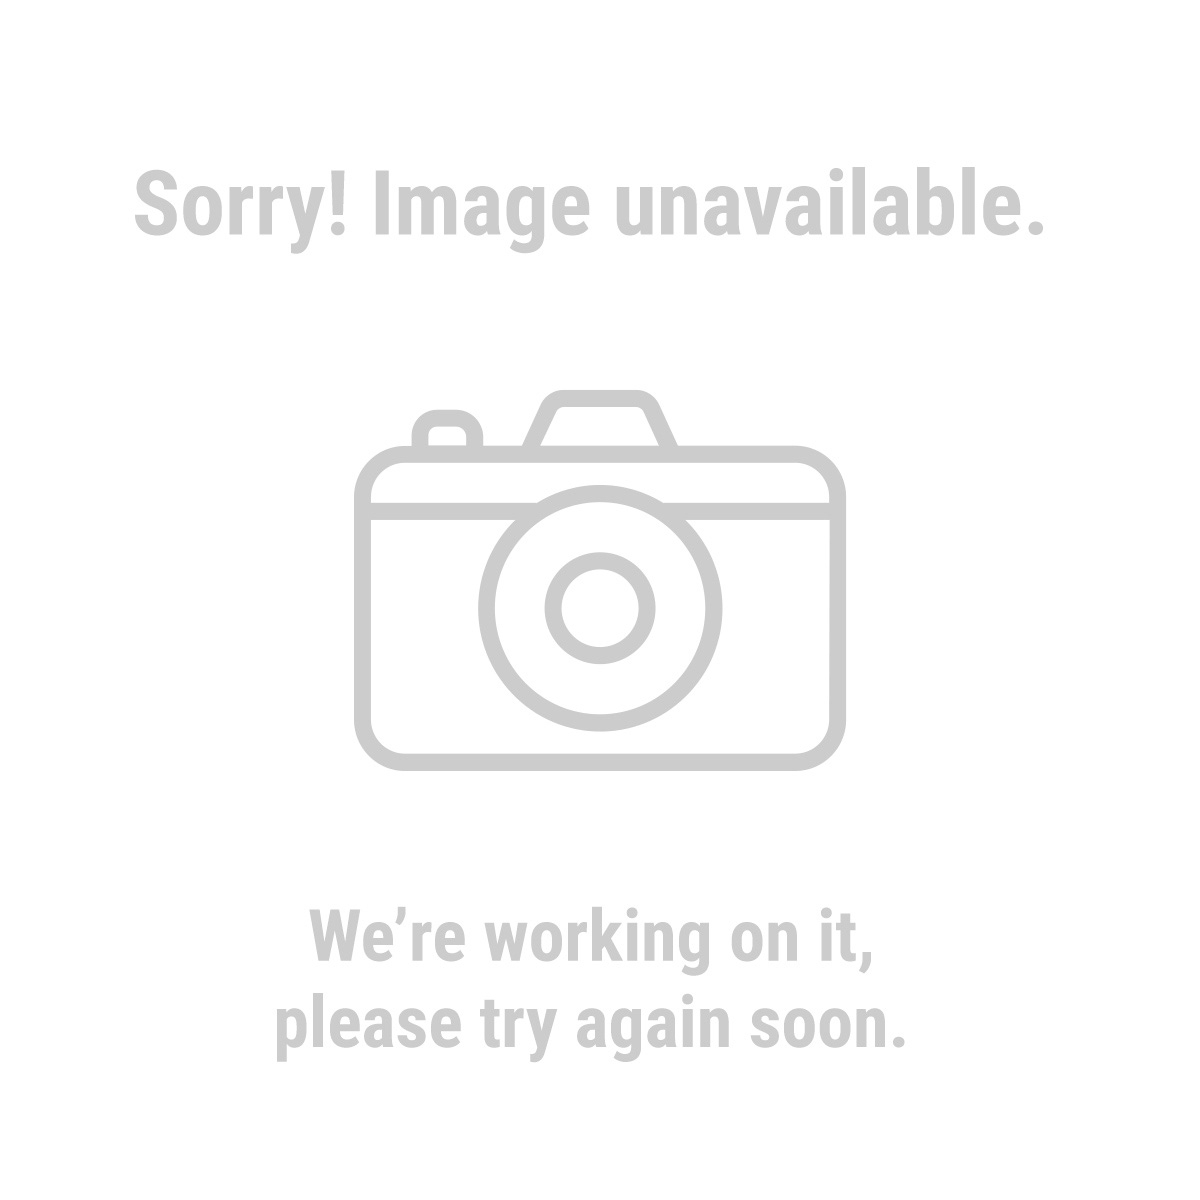 "12"", 80 Tooth Alternate Top Bevel Design Circular Saw Blade"